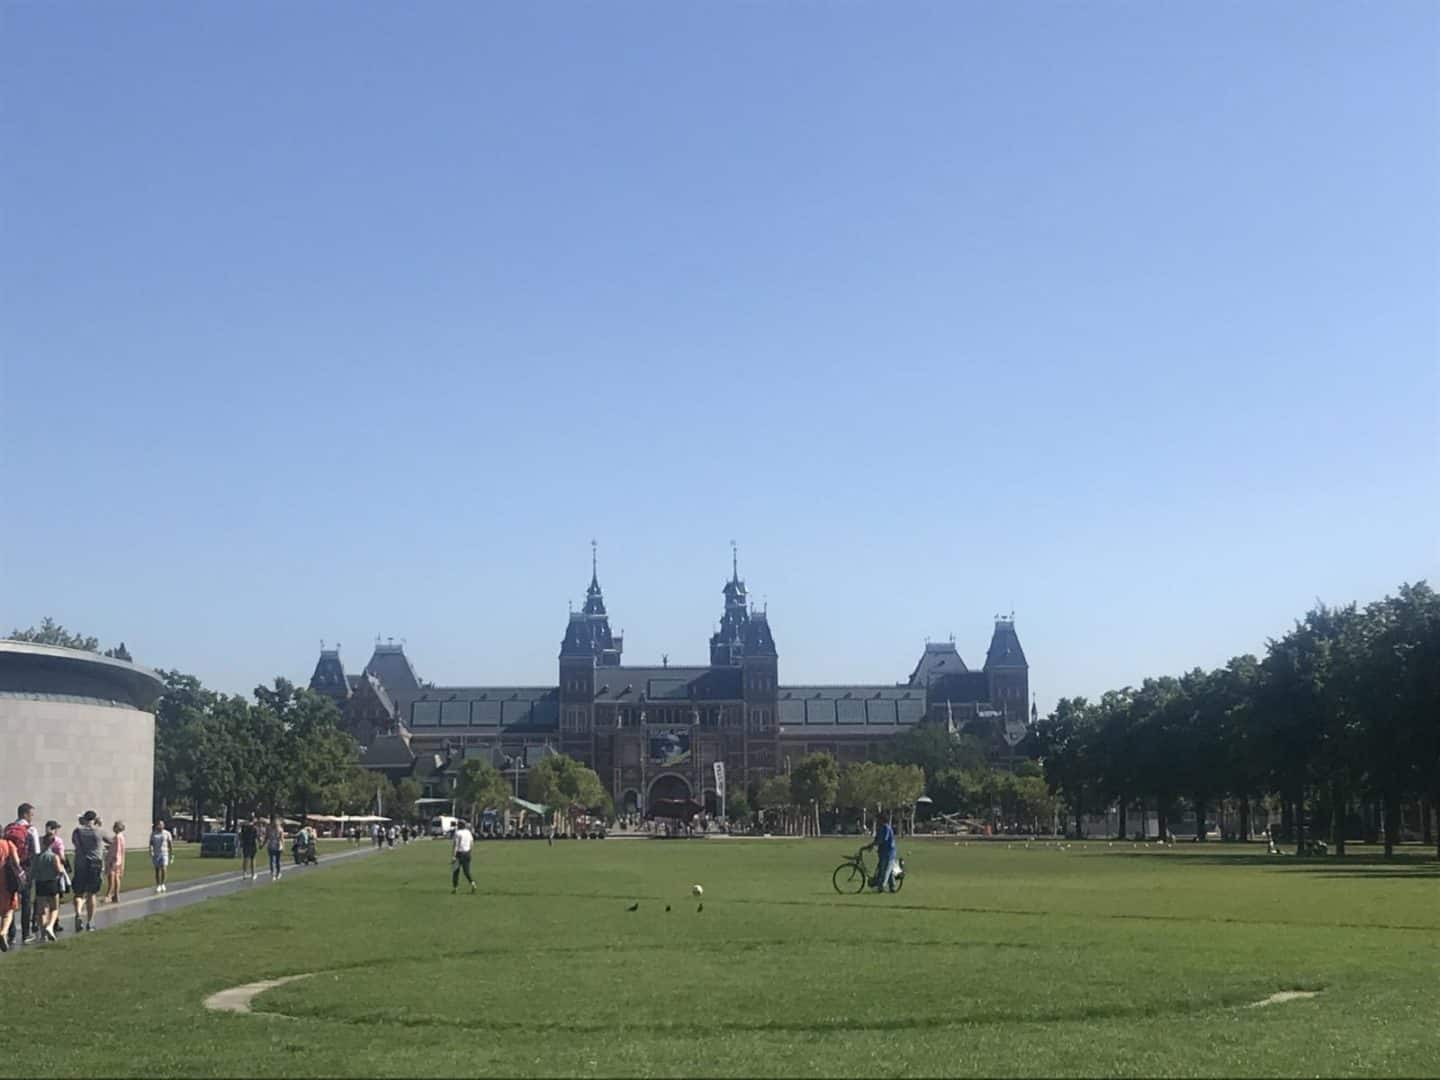 Rijksmuseum Tips & Highlights (including how to visit the Rijksmuseum with kids